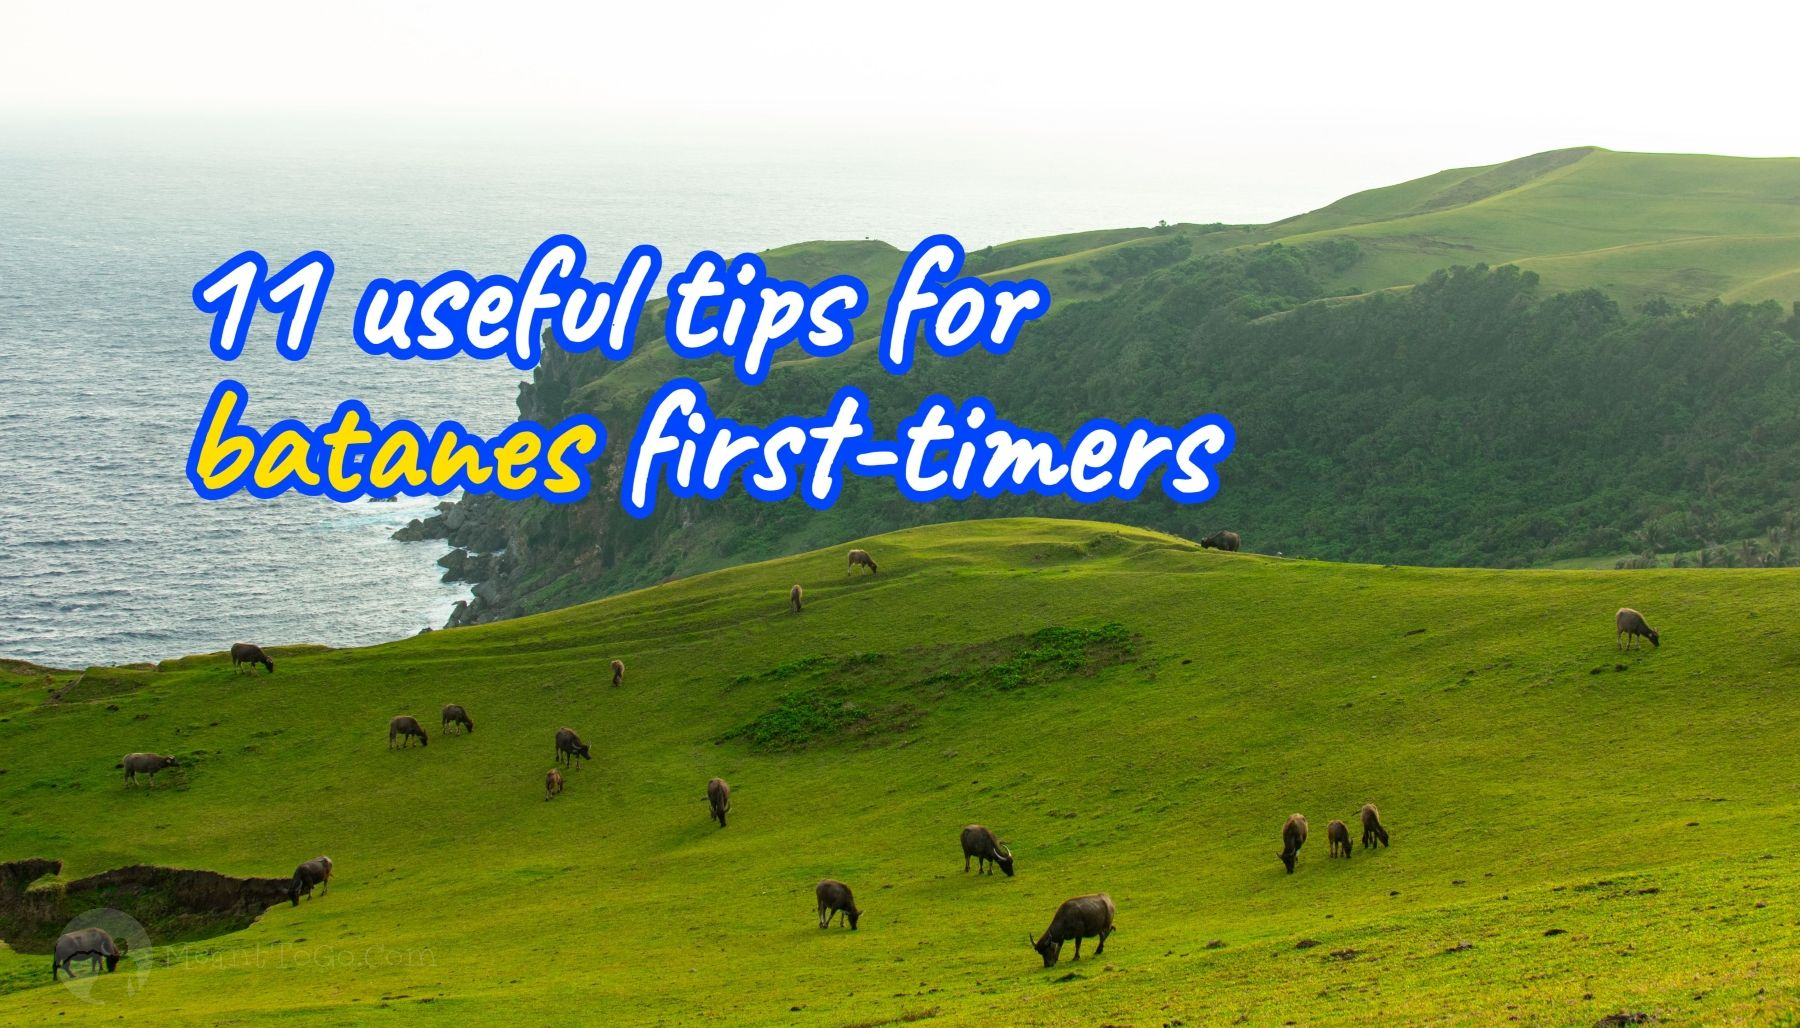 batanes travel tips